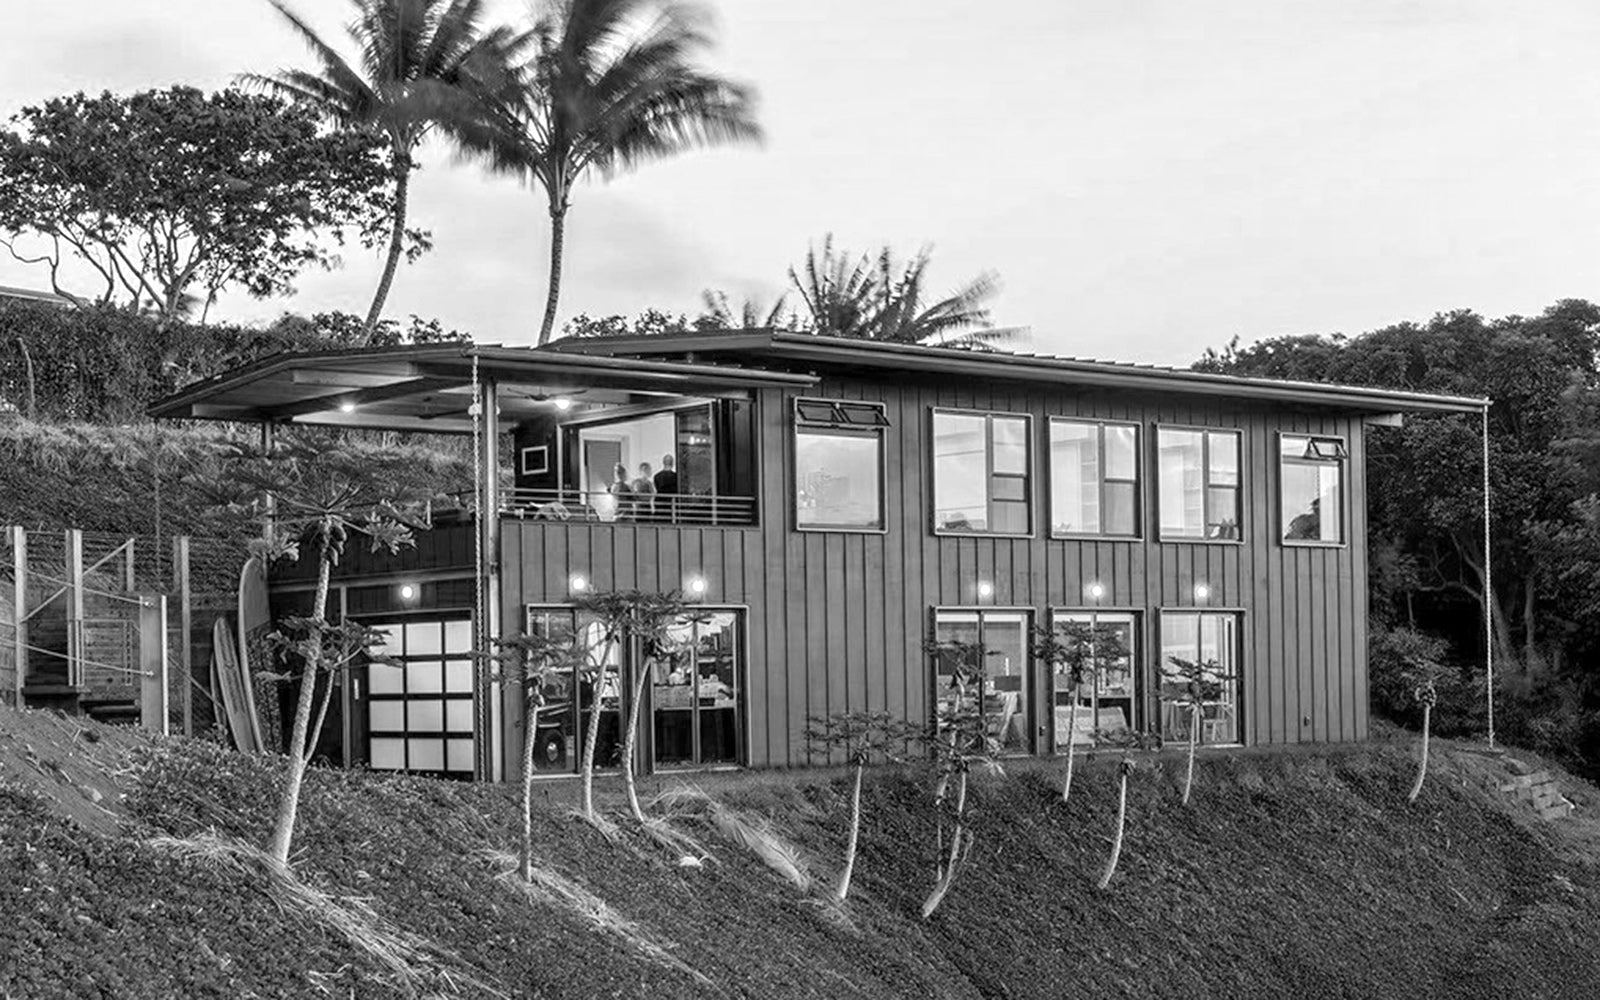 Hawaii Off Grid is a Maui Architecture Firm specializing in sustainable architecture